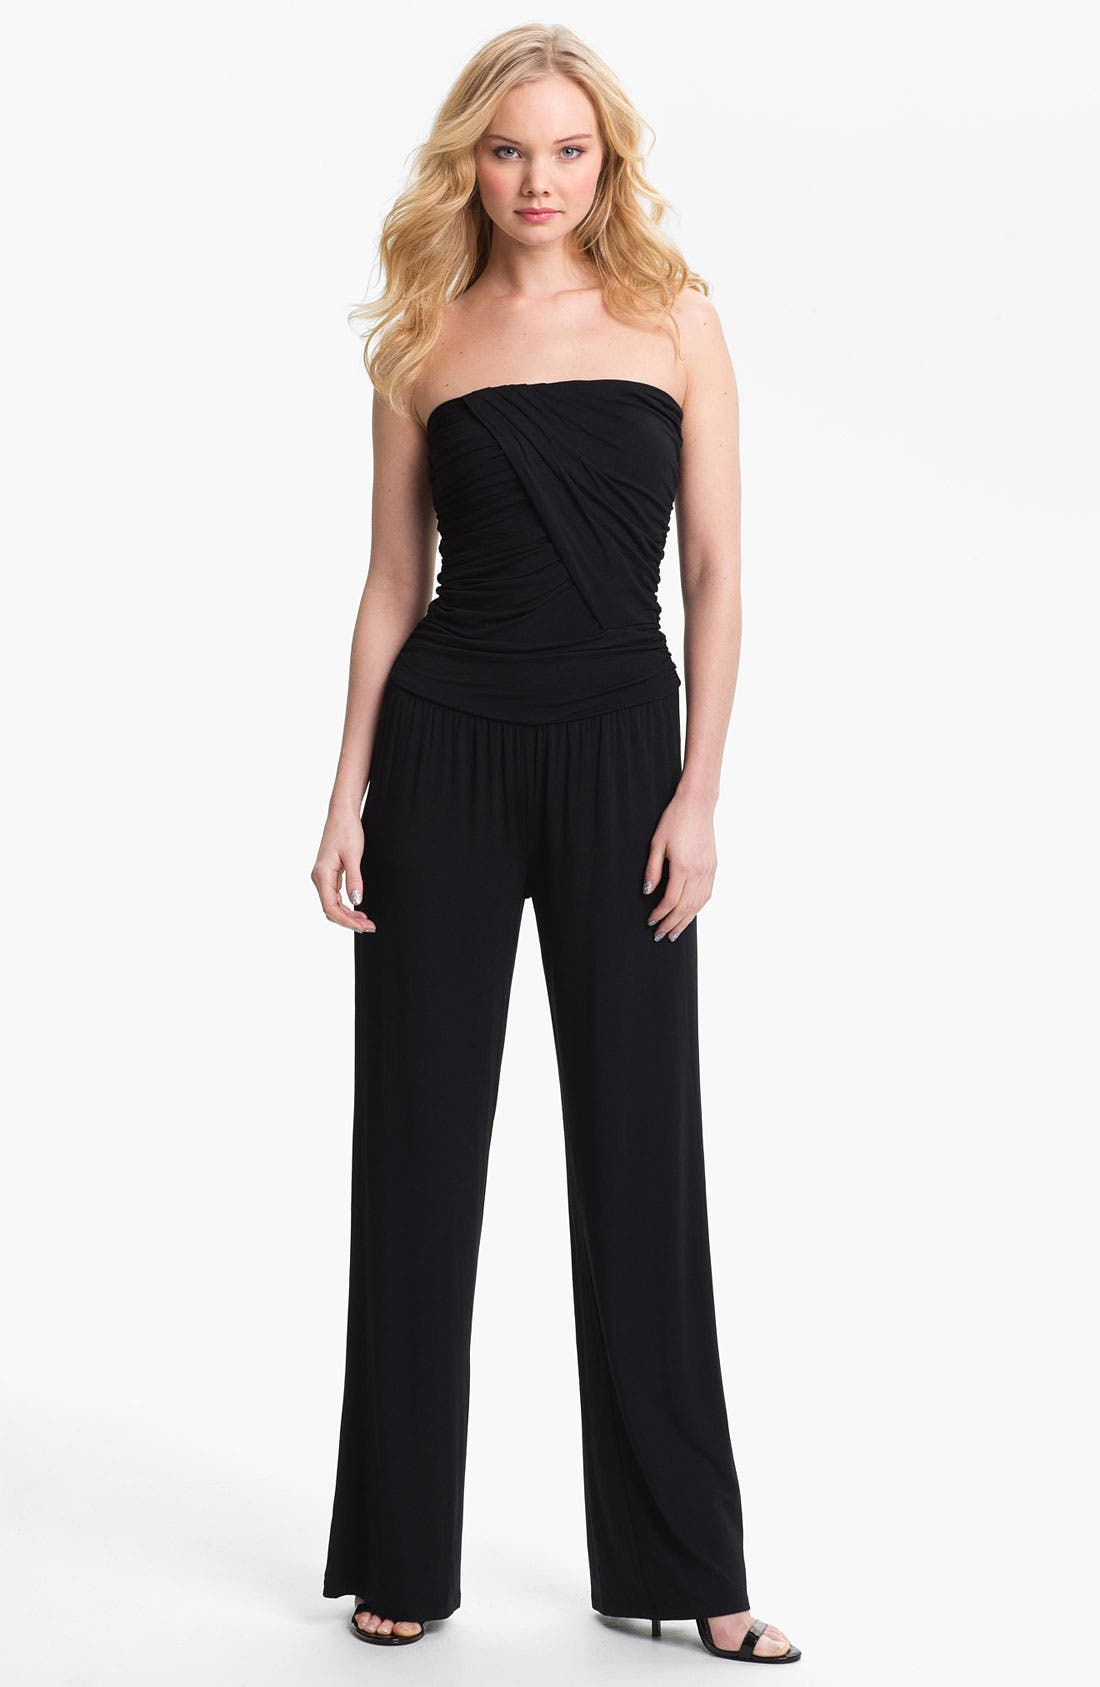 Alternate Image 1 Selected - Tart 'Mariah' Strapless Ruched Jumpsuit